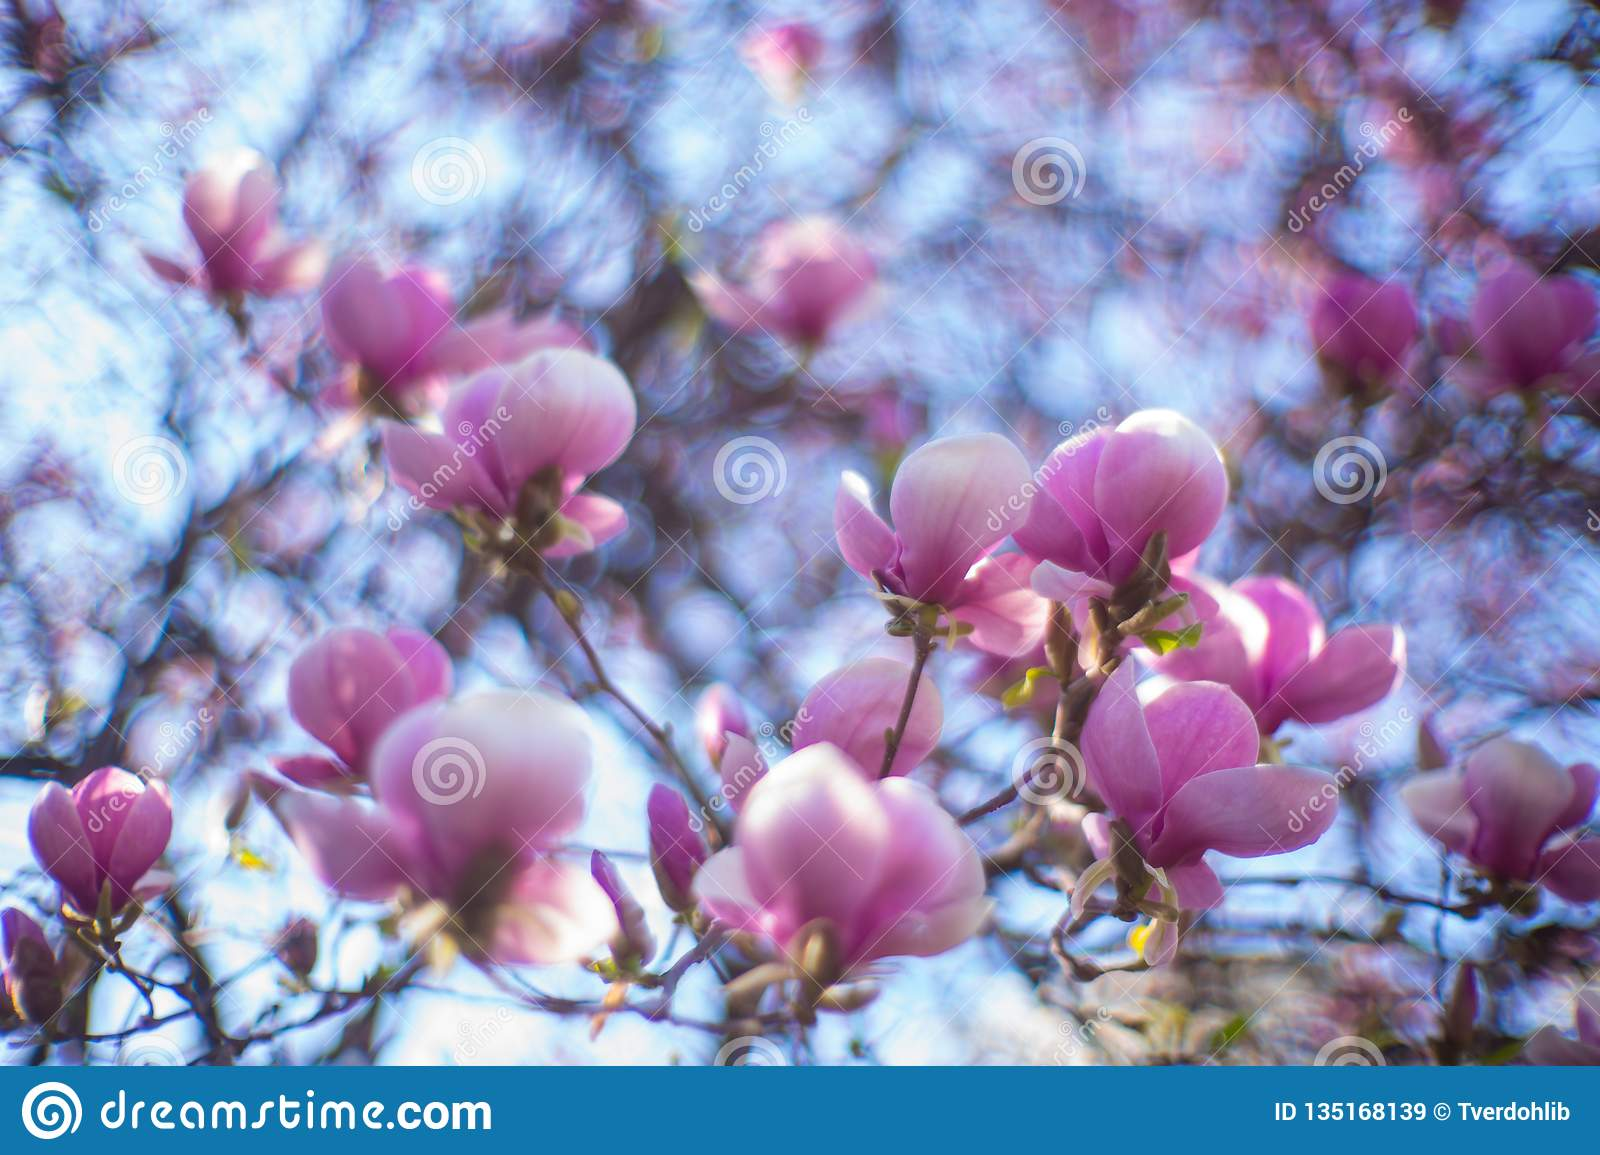 Admired Icons Of Spring Purple Magnolia Flowers In Full Bloom